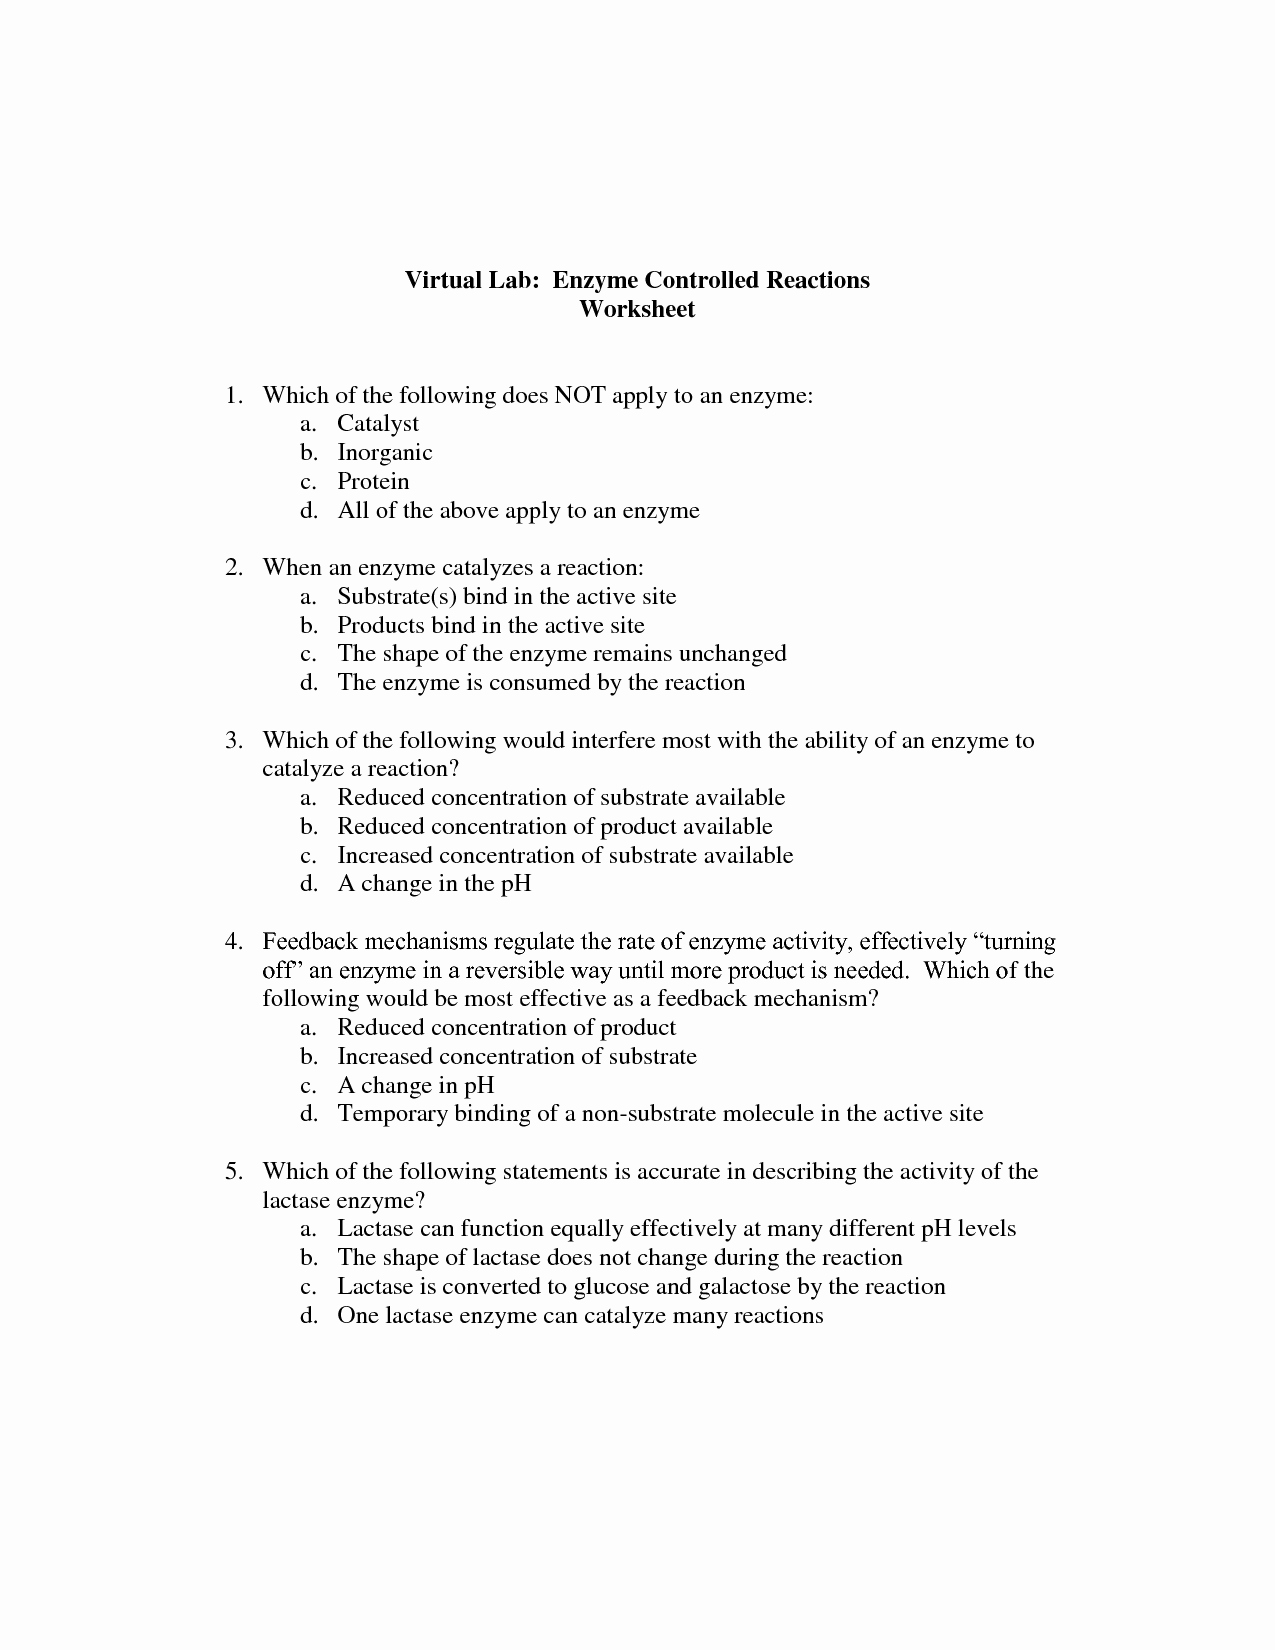 Enzyme Reactions Worksheet Answers Luxury 12 Best Of Enzyme Diagram Worksheets Virtual Lab